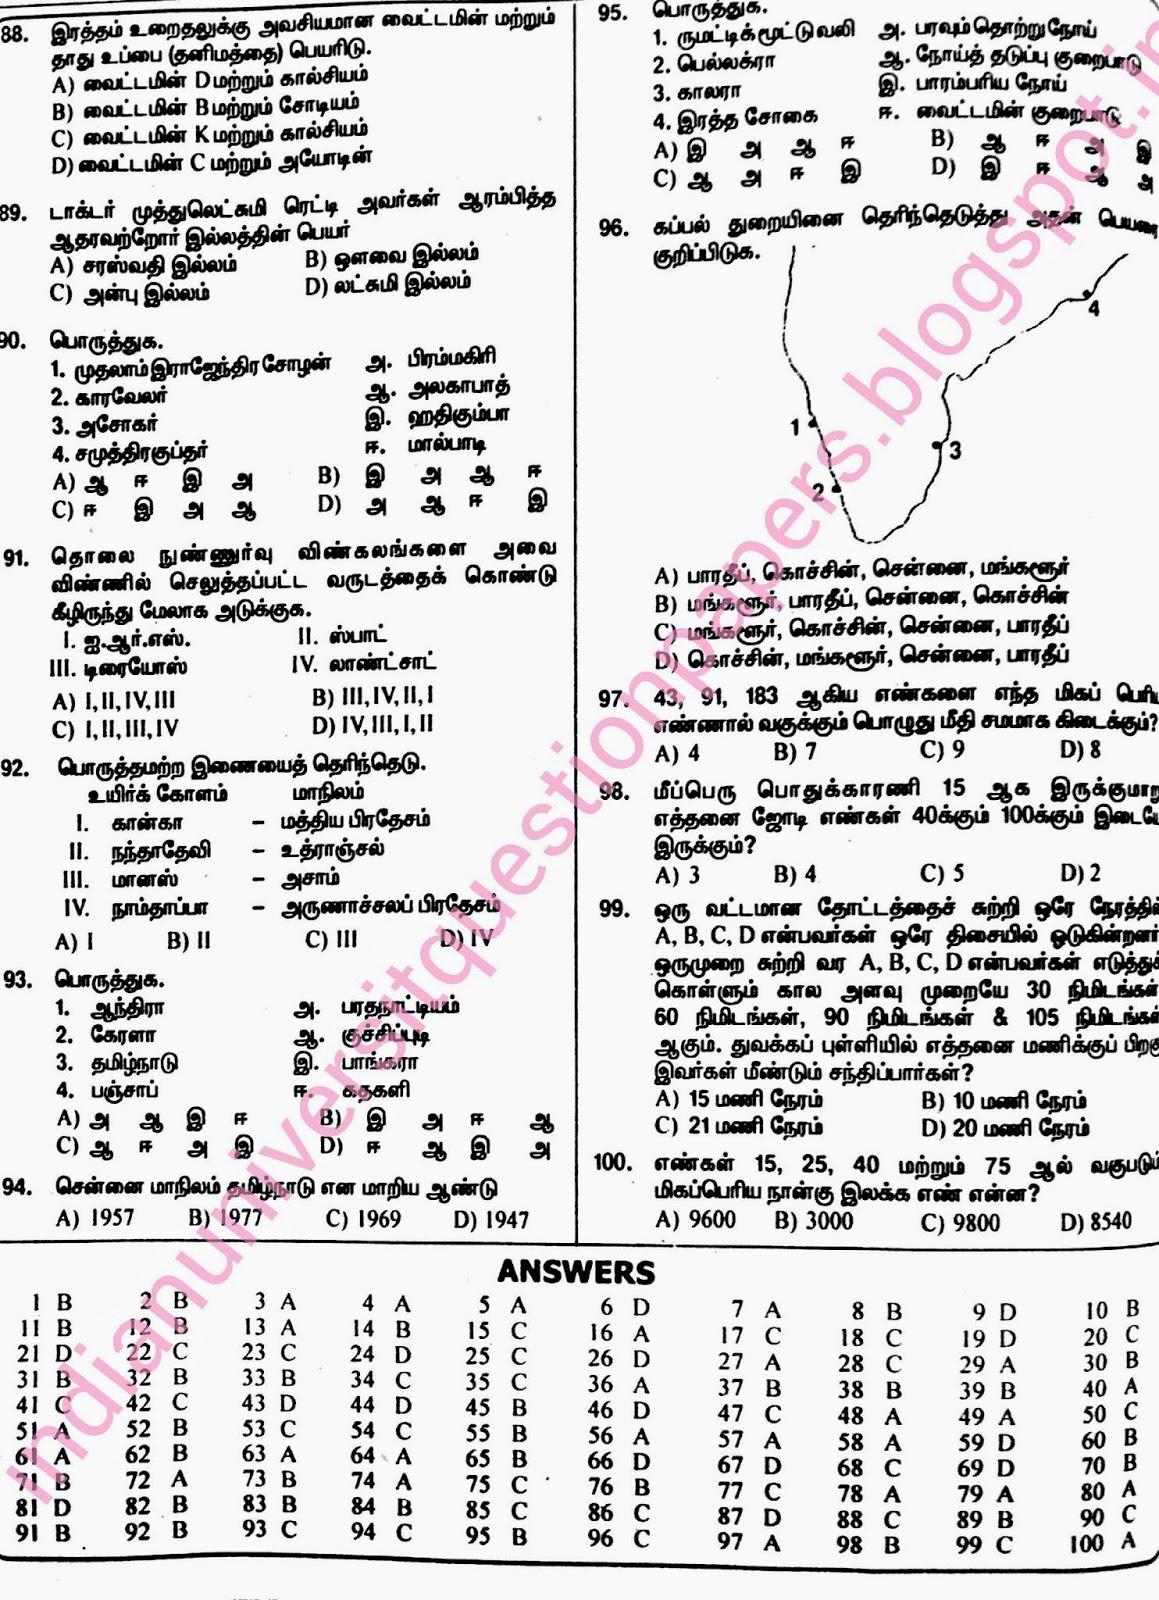 University Question Papers: May 2014